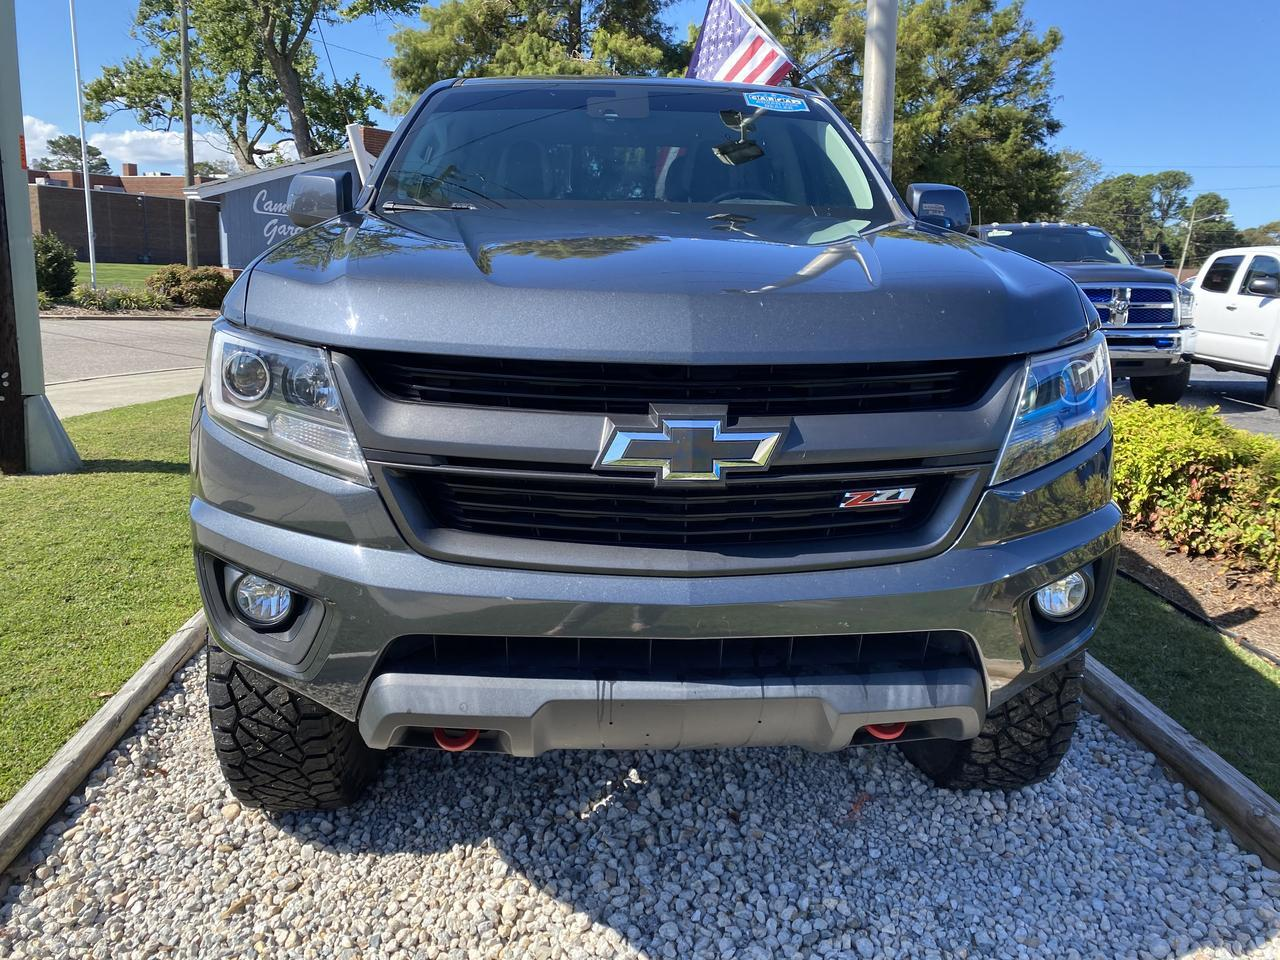 2017 CHEVROLET COLORADO LT CREW CAB 4X4, WARRANTY, LIFTED, LEATHER, BLUETOOTH, NAV, TOW PKG, 1 OWNER, CLEAN CARFAX! Norfolk VA